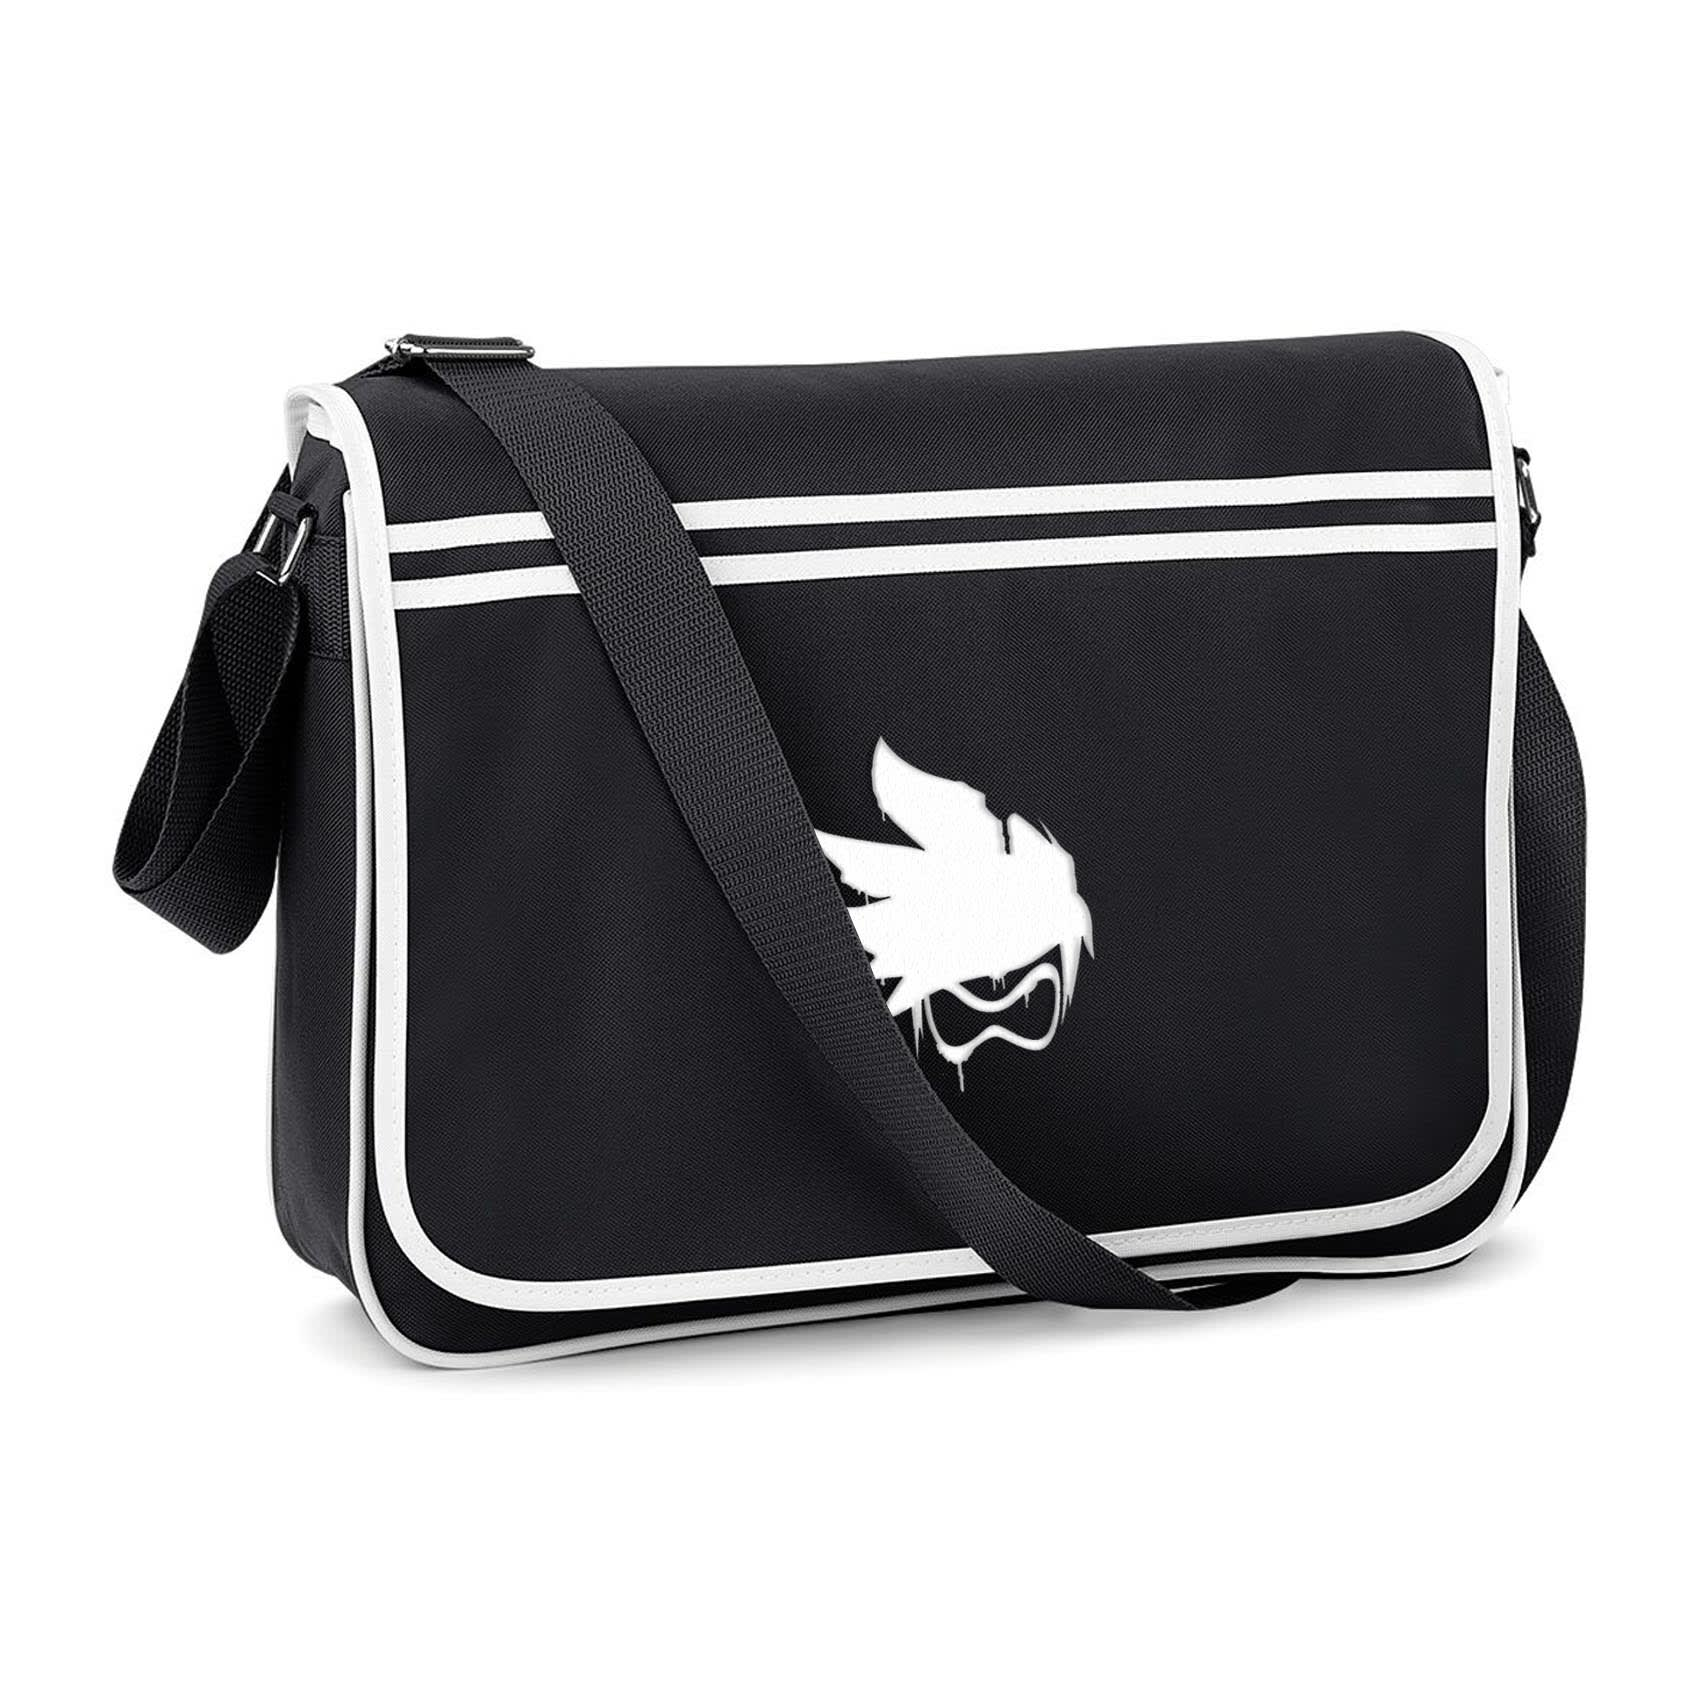 Overwatch Tracer Messenger Bag